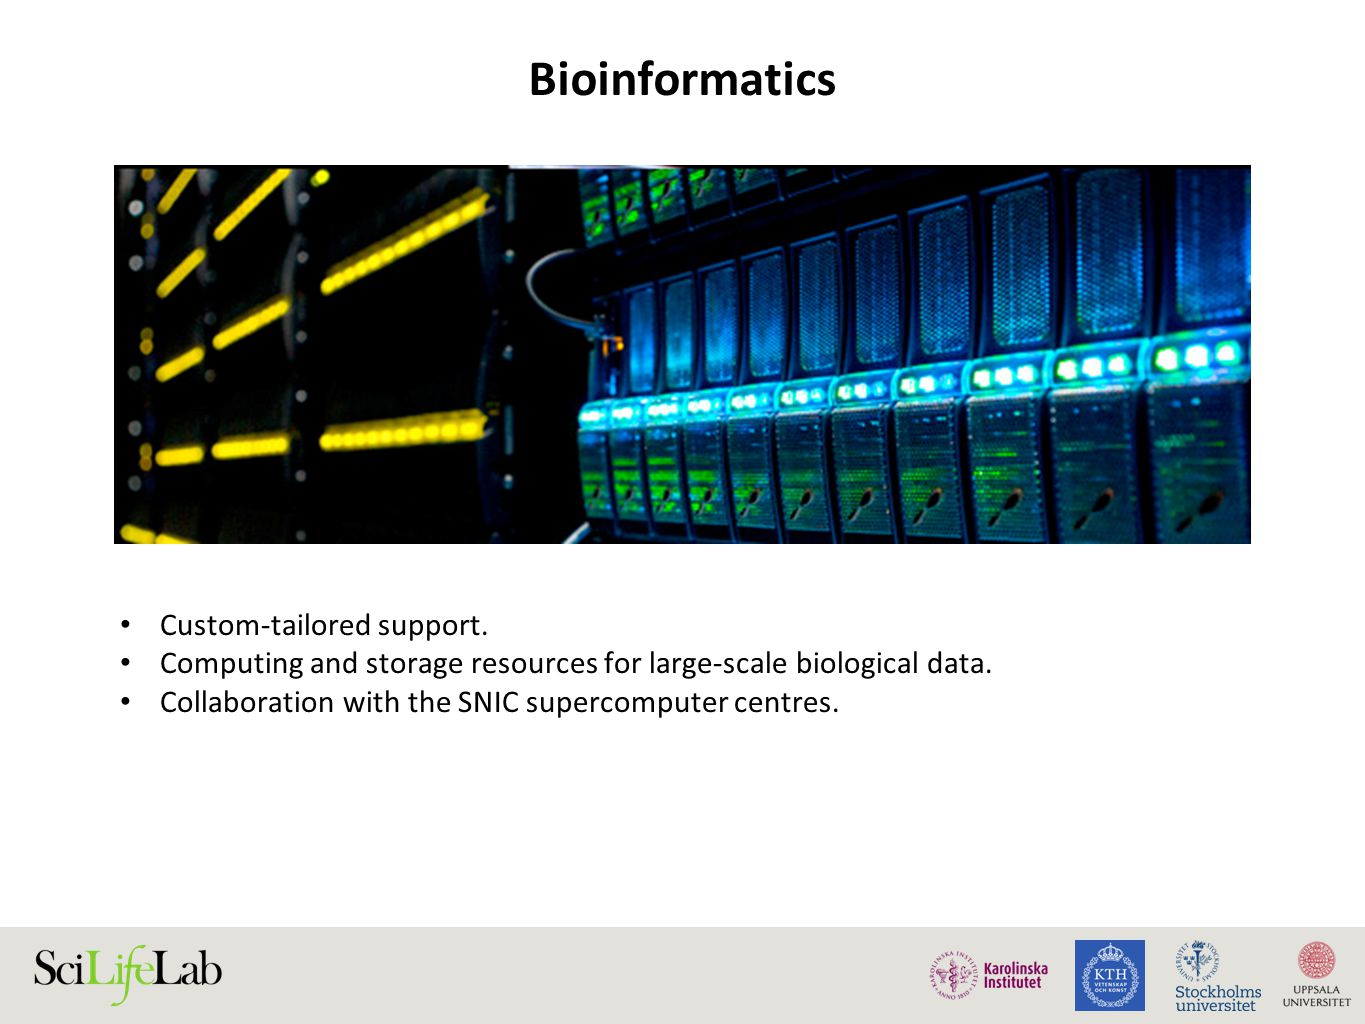 Focus areas 2014 Genome annotation platform –expansion with genome assembly activities Pipelines infrastructure Mosler – secure compute and storage –in close collaboration with SNIC/UPPMAX Improved support request management Data publishing Increased training activities Nordic collaborations – Nordic ELIXIR and NeIC European collaborations – ELIXIR and RDA Improved coordination with WABI and UPPNEX 24